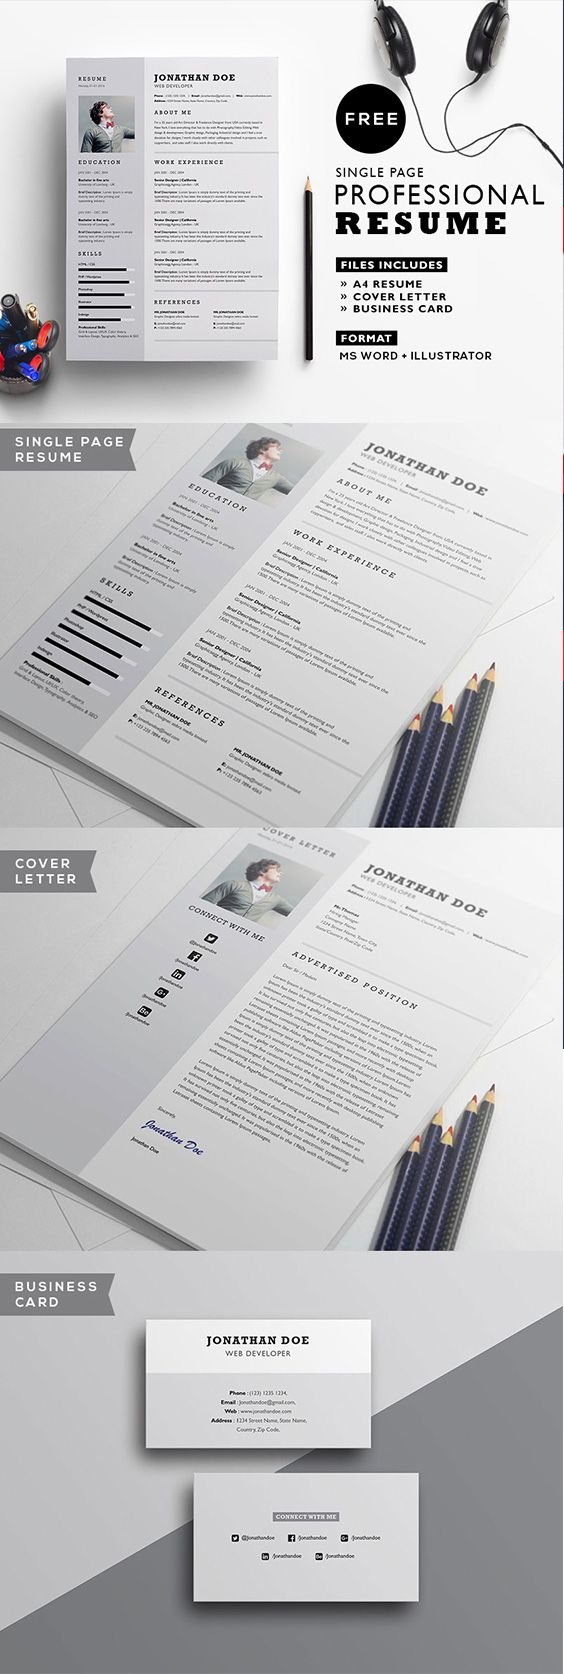 32 best CV template images on Pinterest | Resume templates, Job ...